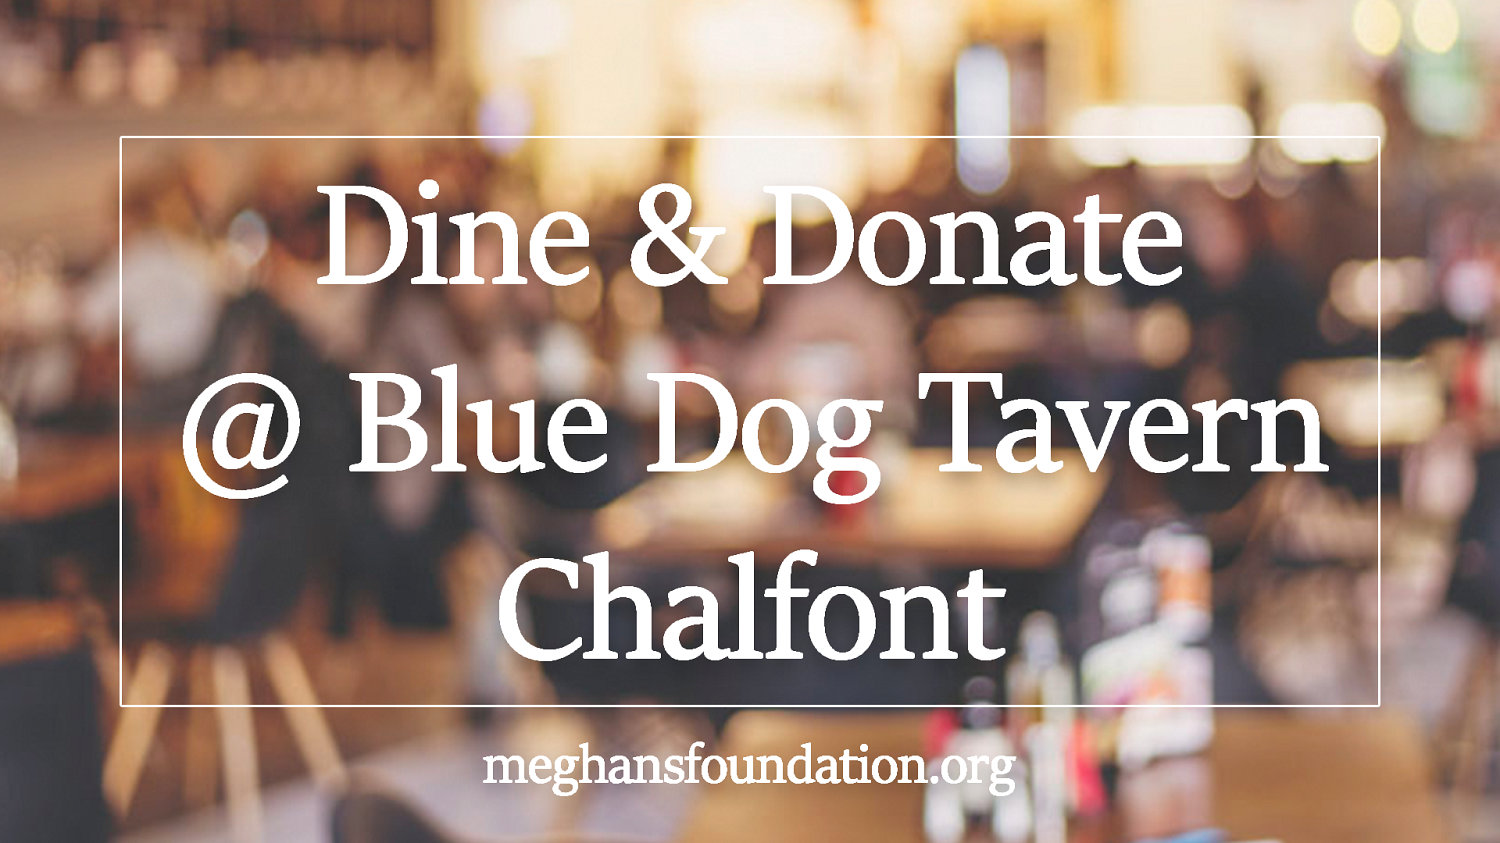 Blue Dog Tavern To Host Dine & Donate November 7